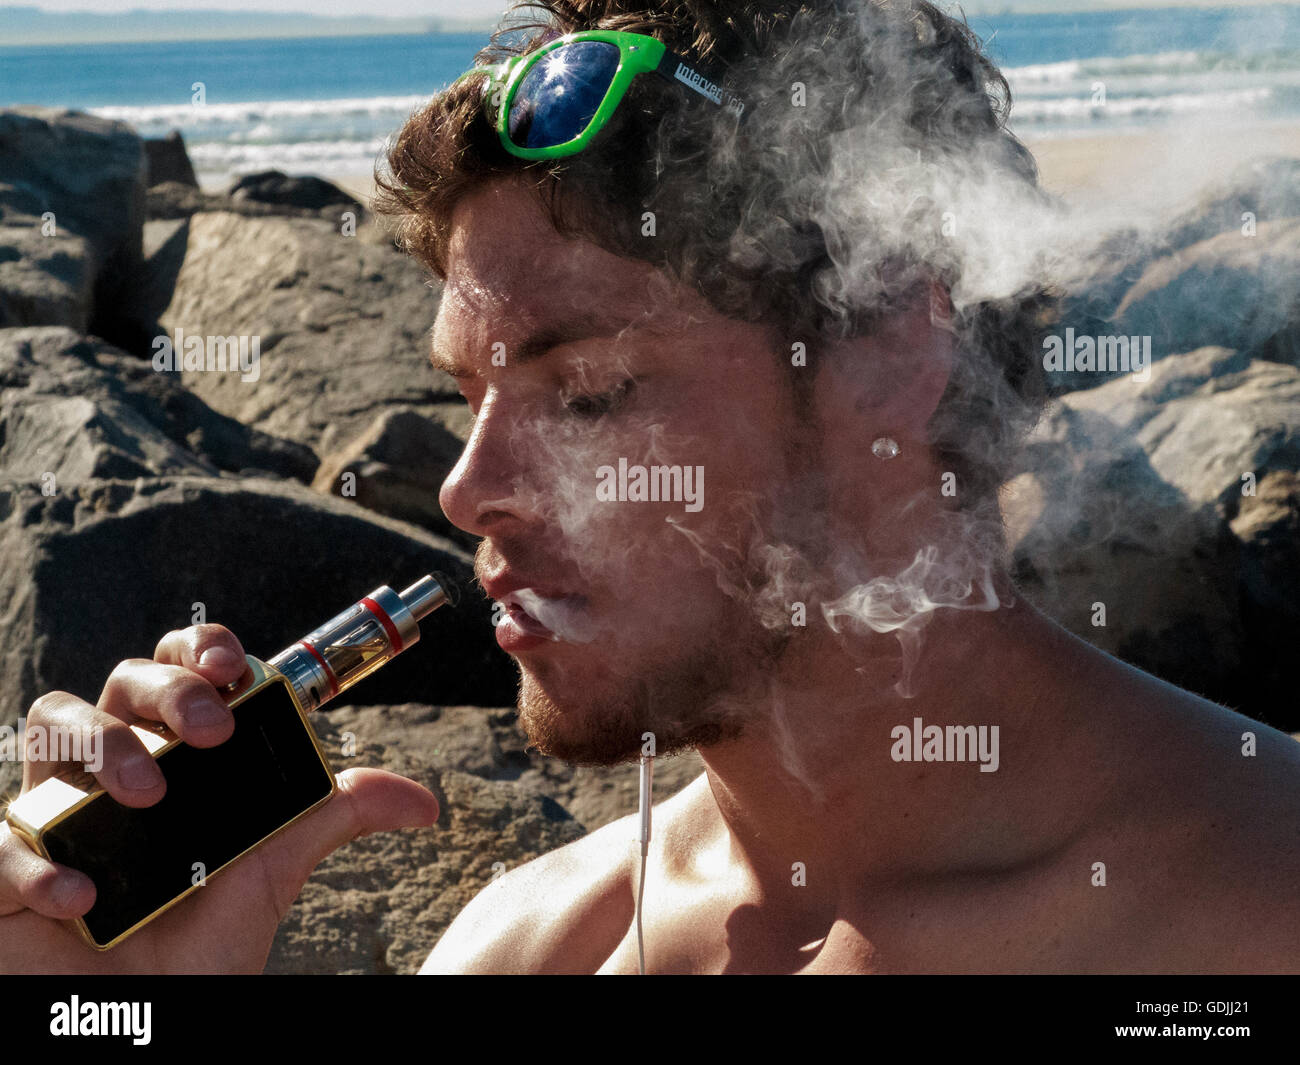 Head and shoulders view of a young shirtless male surrounded by smoke from his e-cigarette he is holding close to - Stock Image